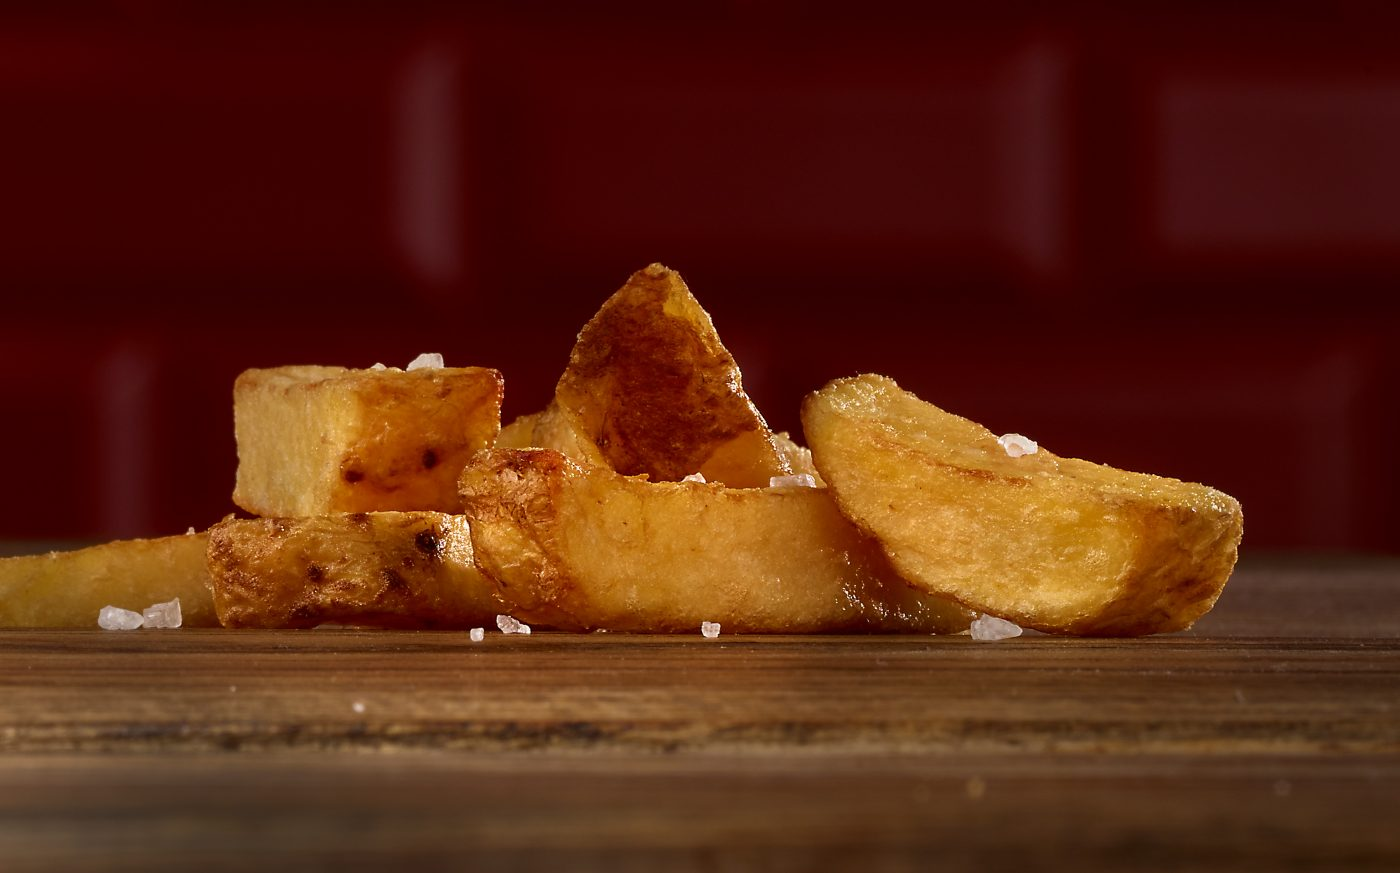 yummy potato wedges burger is on a old nice wood table. dark red tiles are in the background